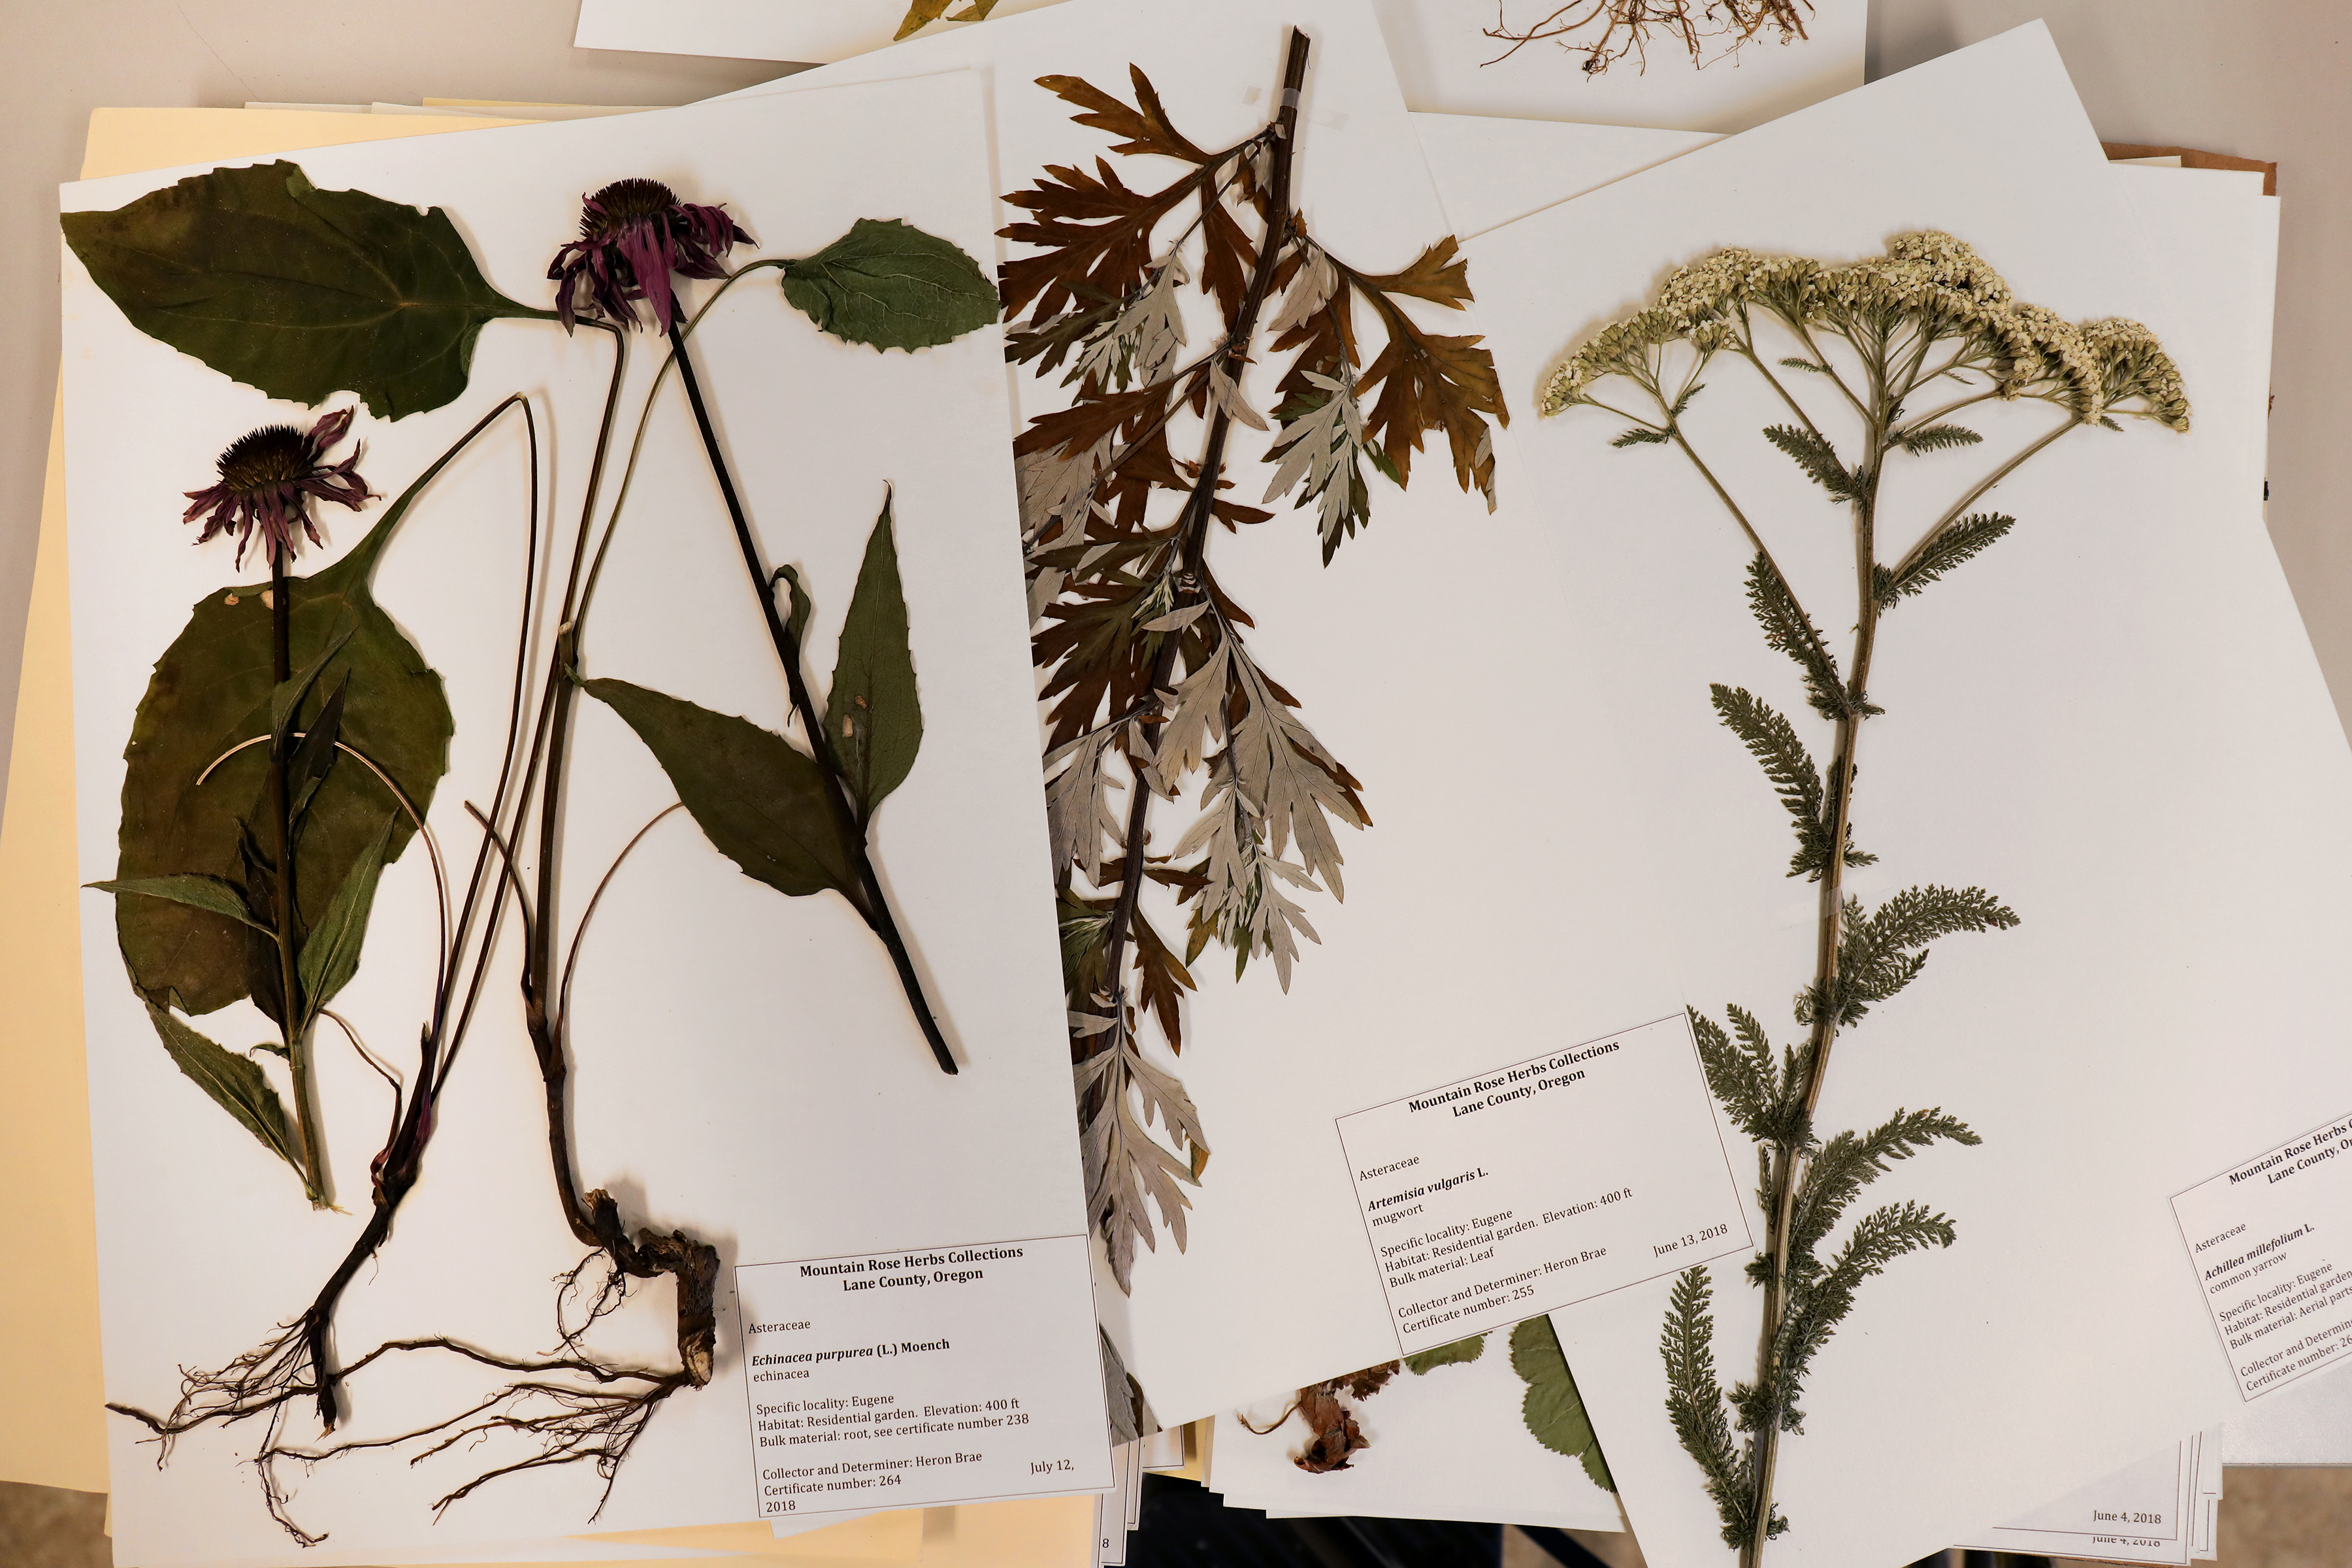 Echinacea, mugwort, and yarrow reference samples which were collected by botanist Heron Brae to be kept in Mountain Rose Herb's library as reference samples to compare with incoming fresh material.